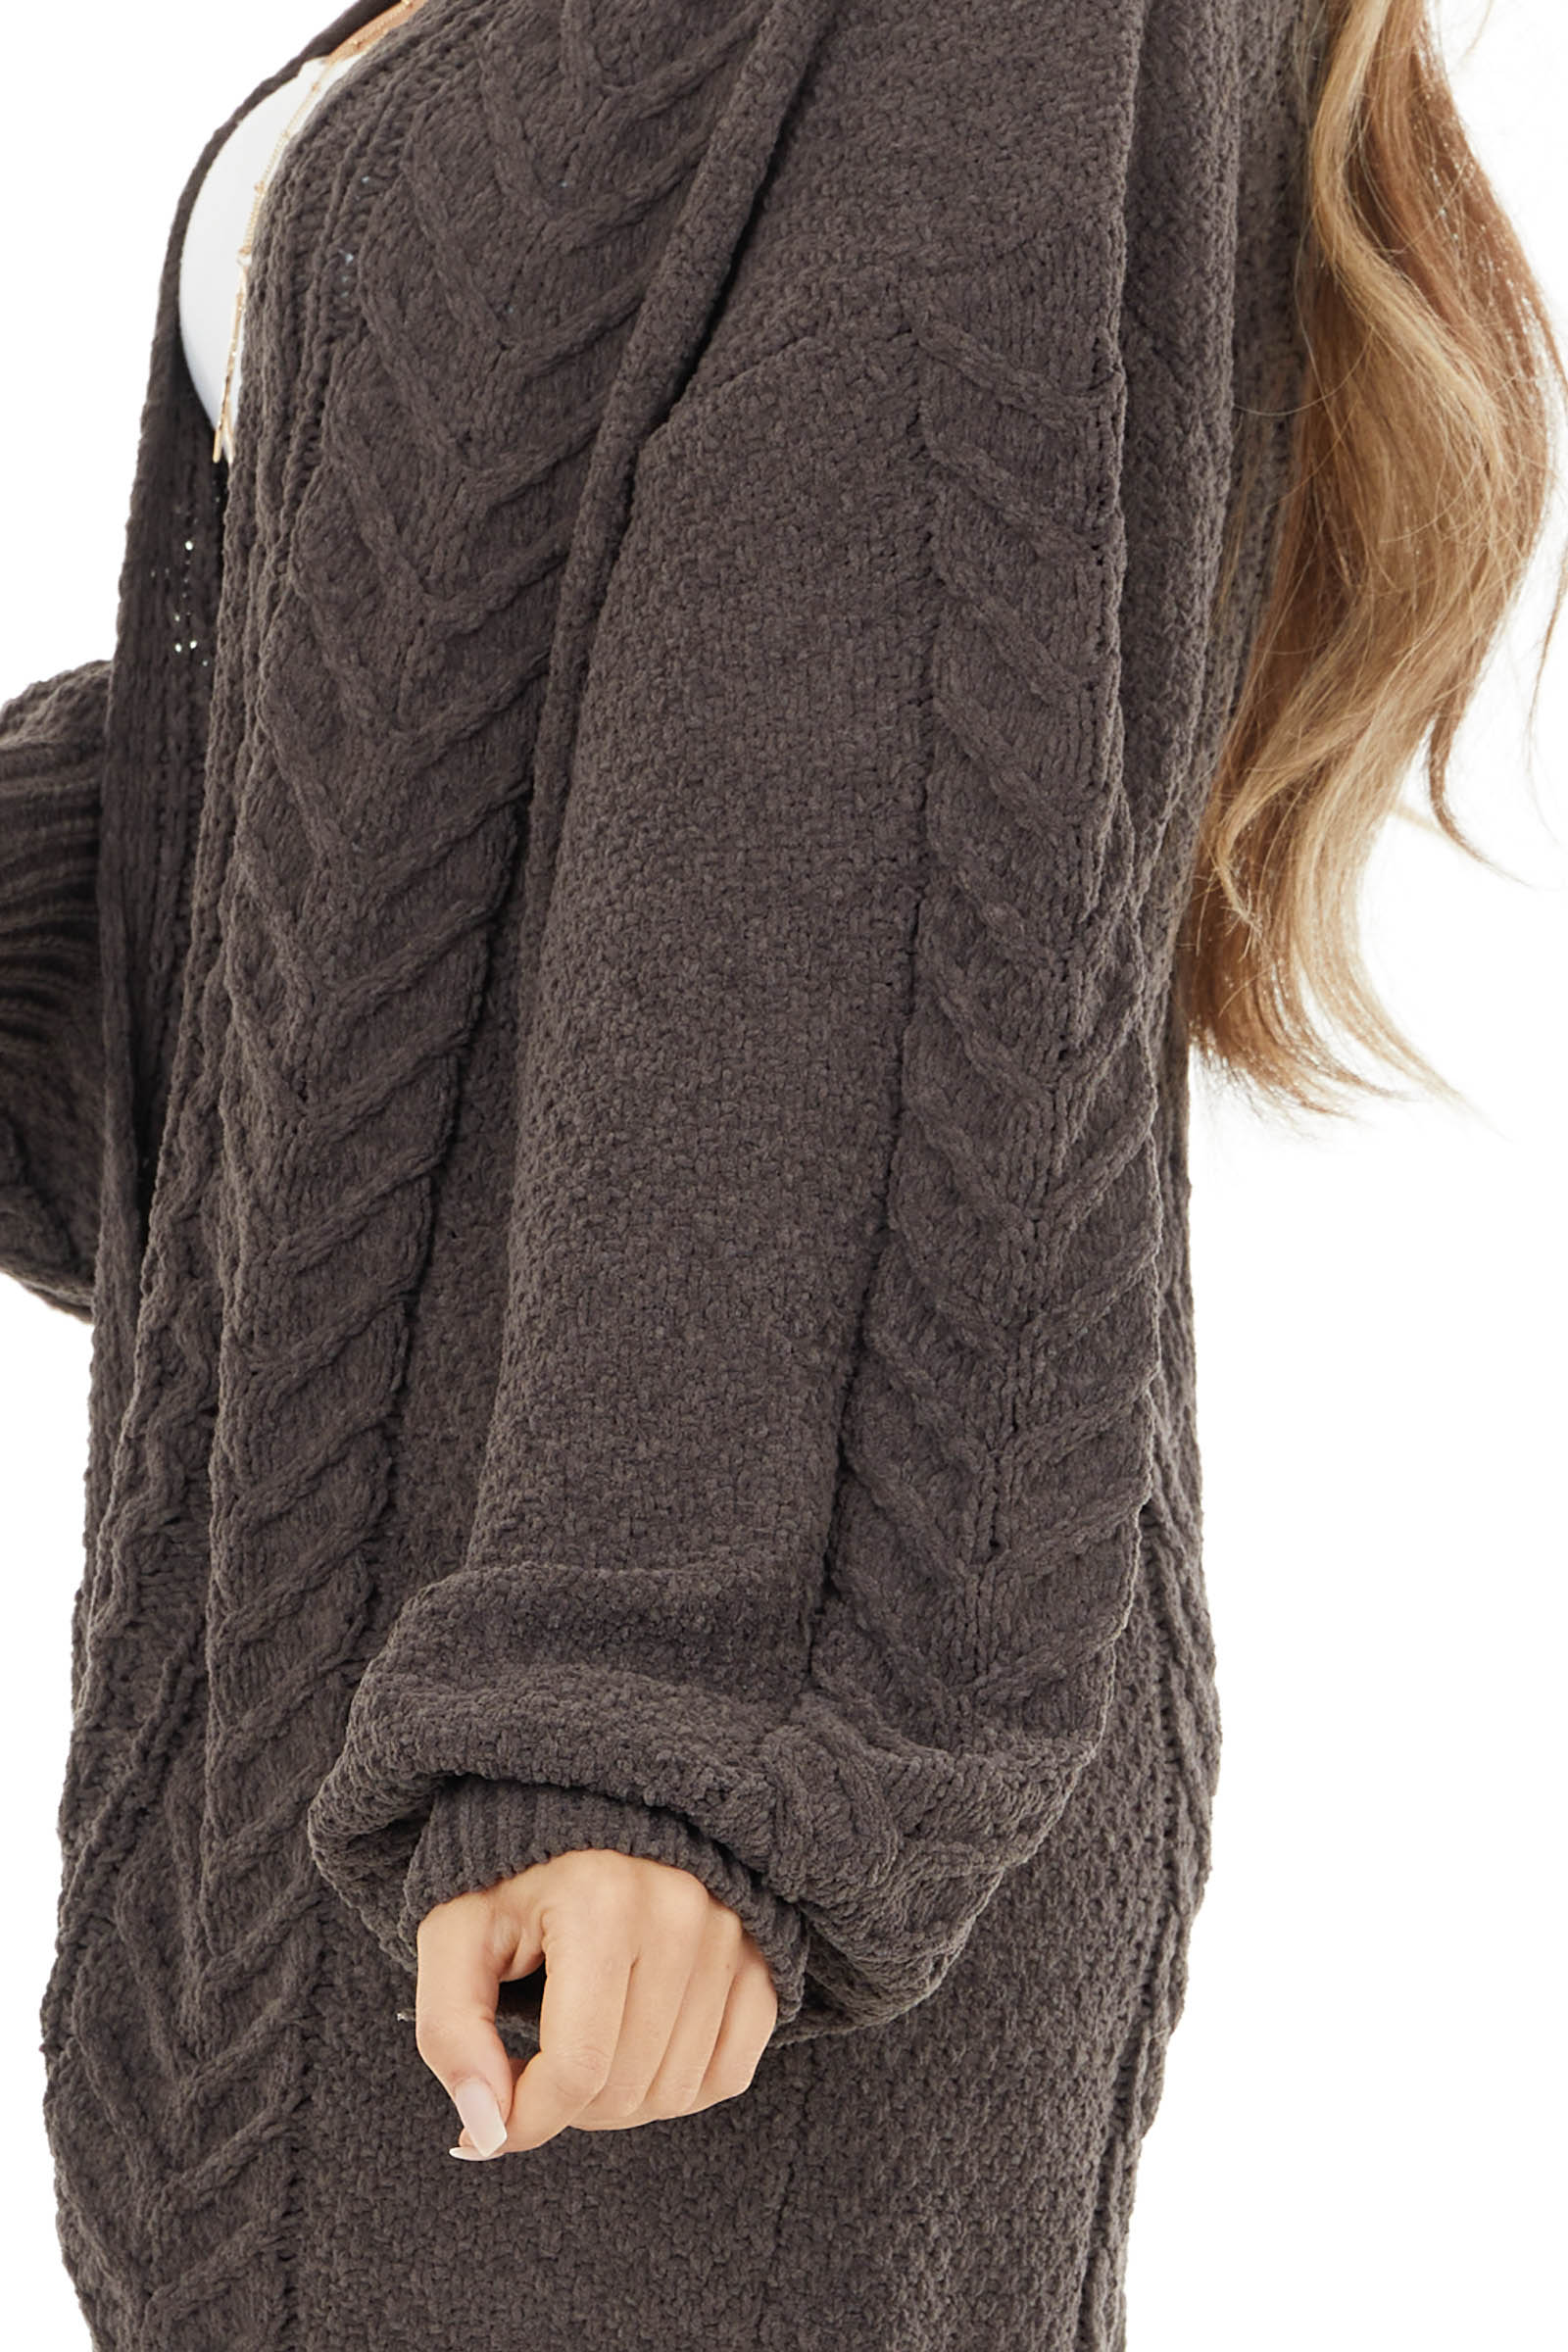 Cocoa Soft Cable Knit Open Front Cardigan with Long Sleeves